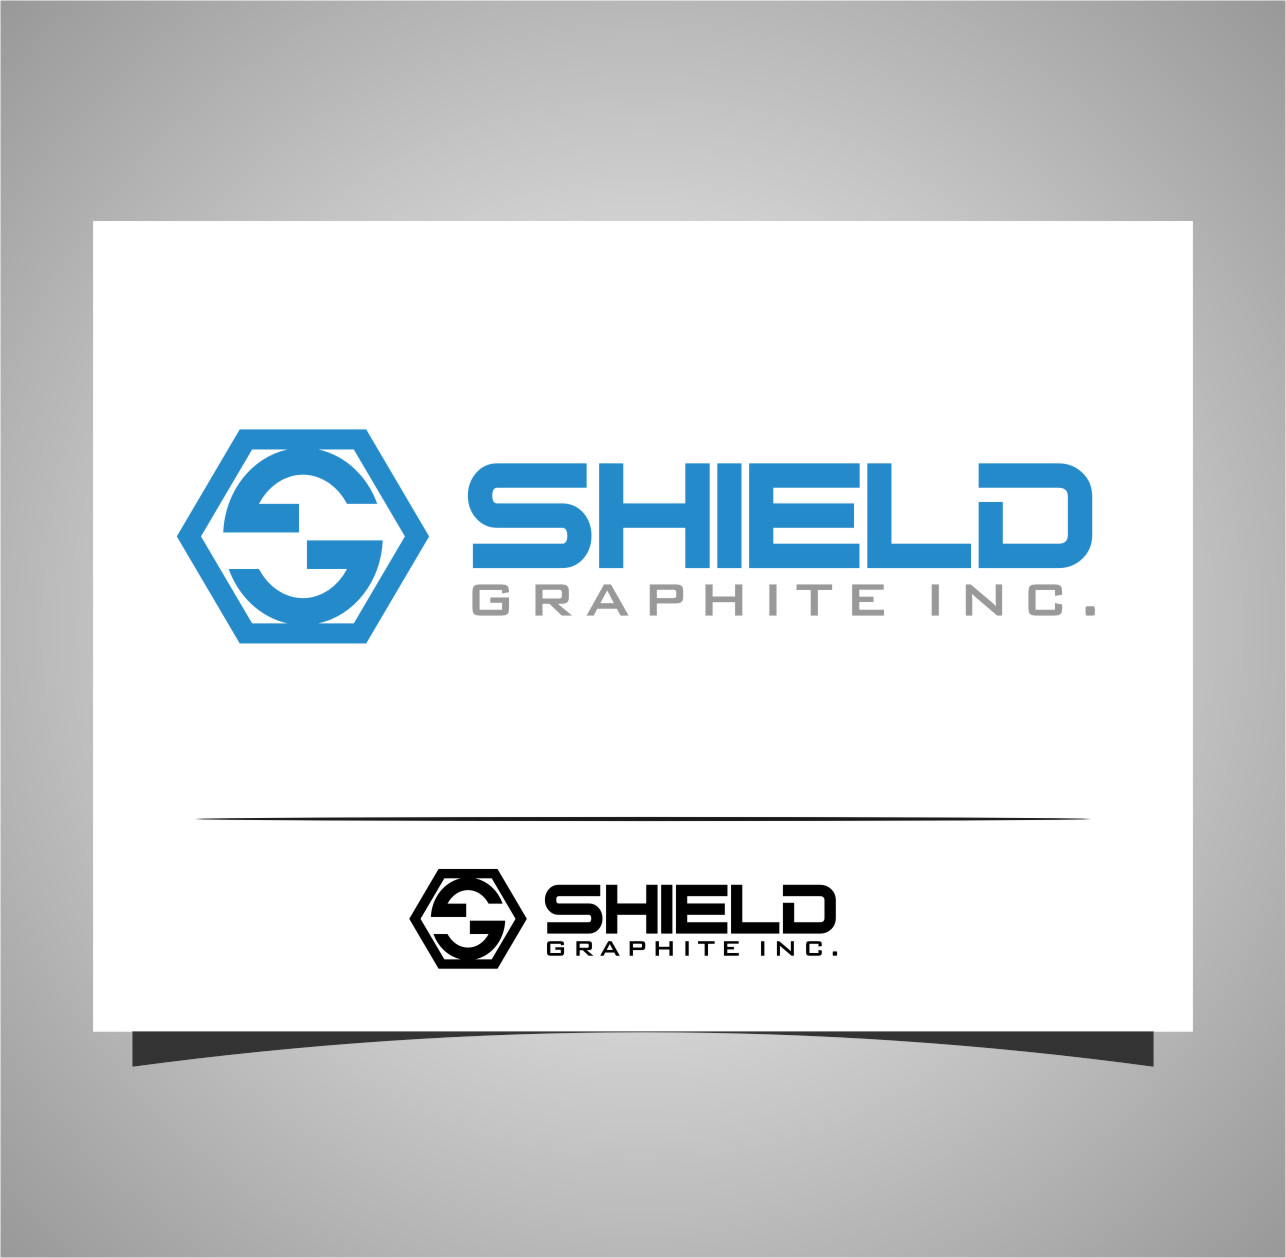 Logo Design by Ngepet_art - Entry No. 115 in the Logo Design Contest Imaginative Logo Design for Shield Graphite Inc..